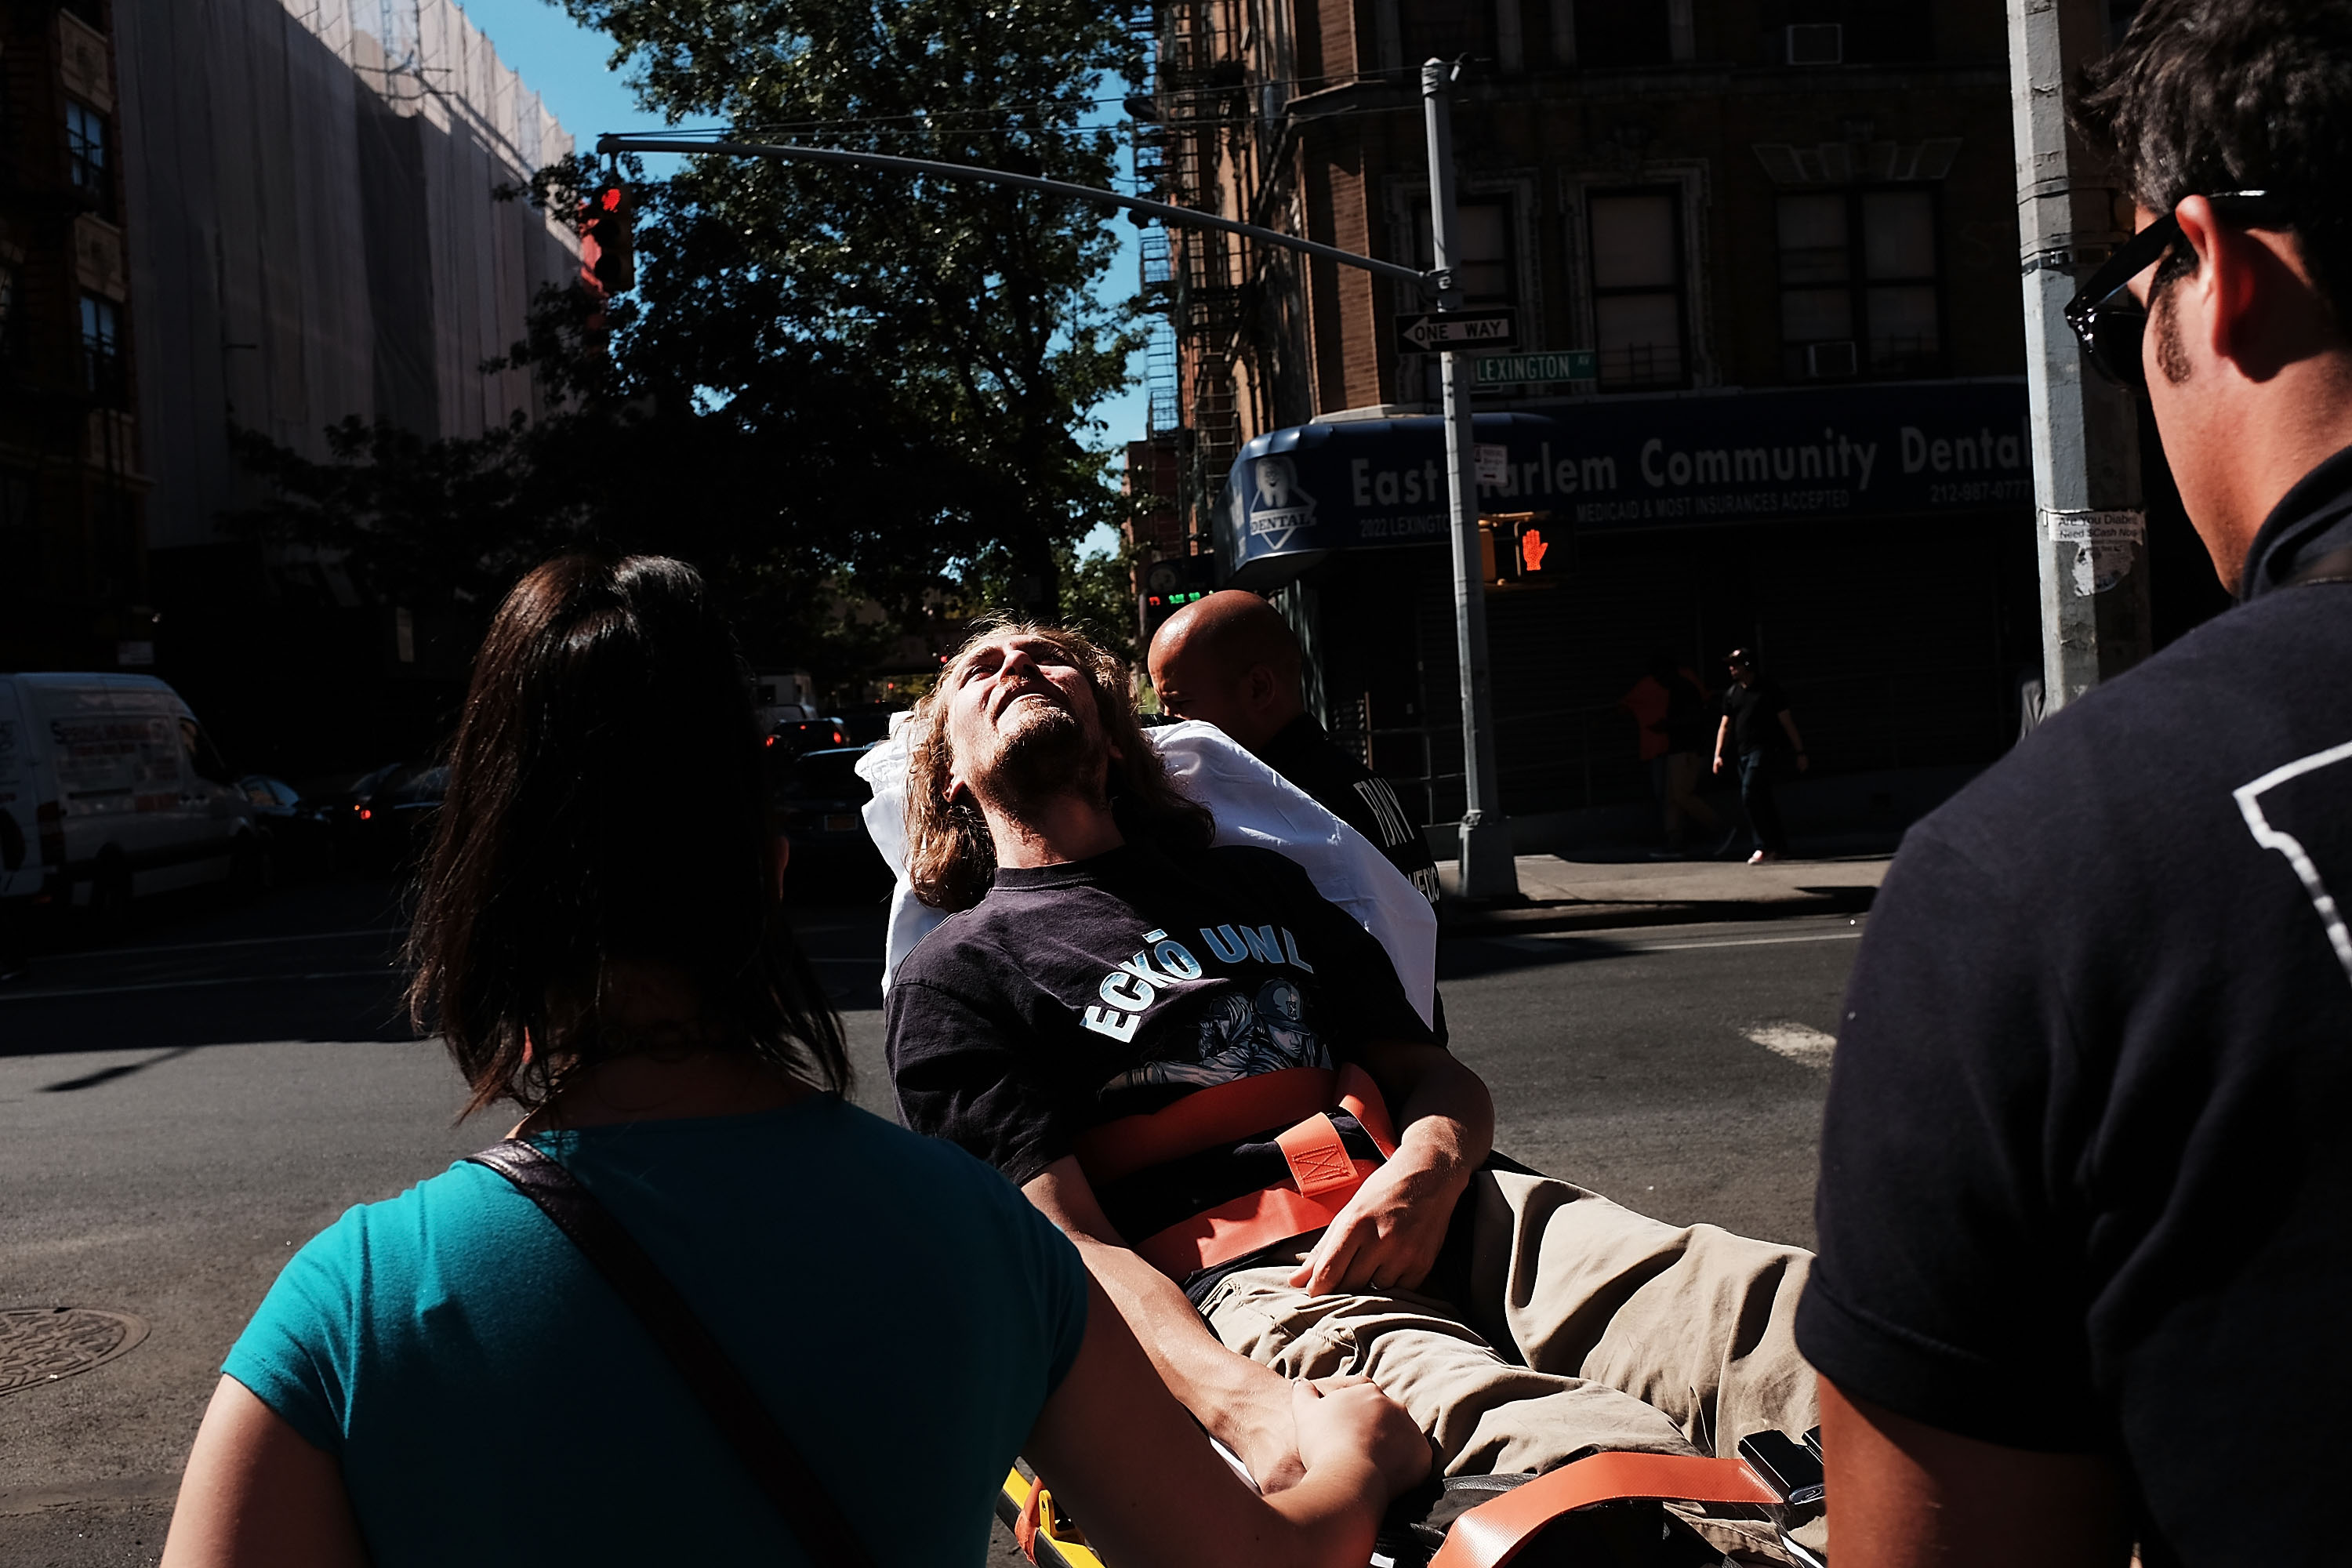 A man is consoled as paramedics take him to the hospital for what is thought to be an overdose of K2 or 'Spice,' a synthetic marijuana drug (Photo by Spencer Platt/Getty Images)